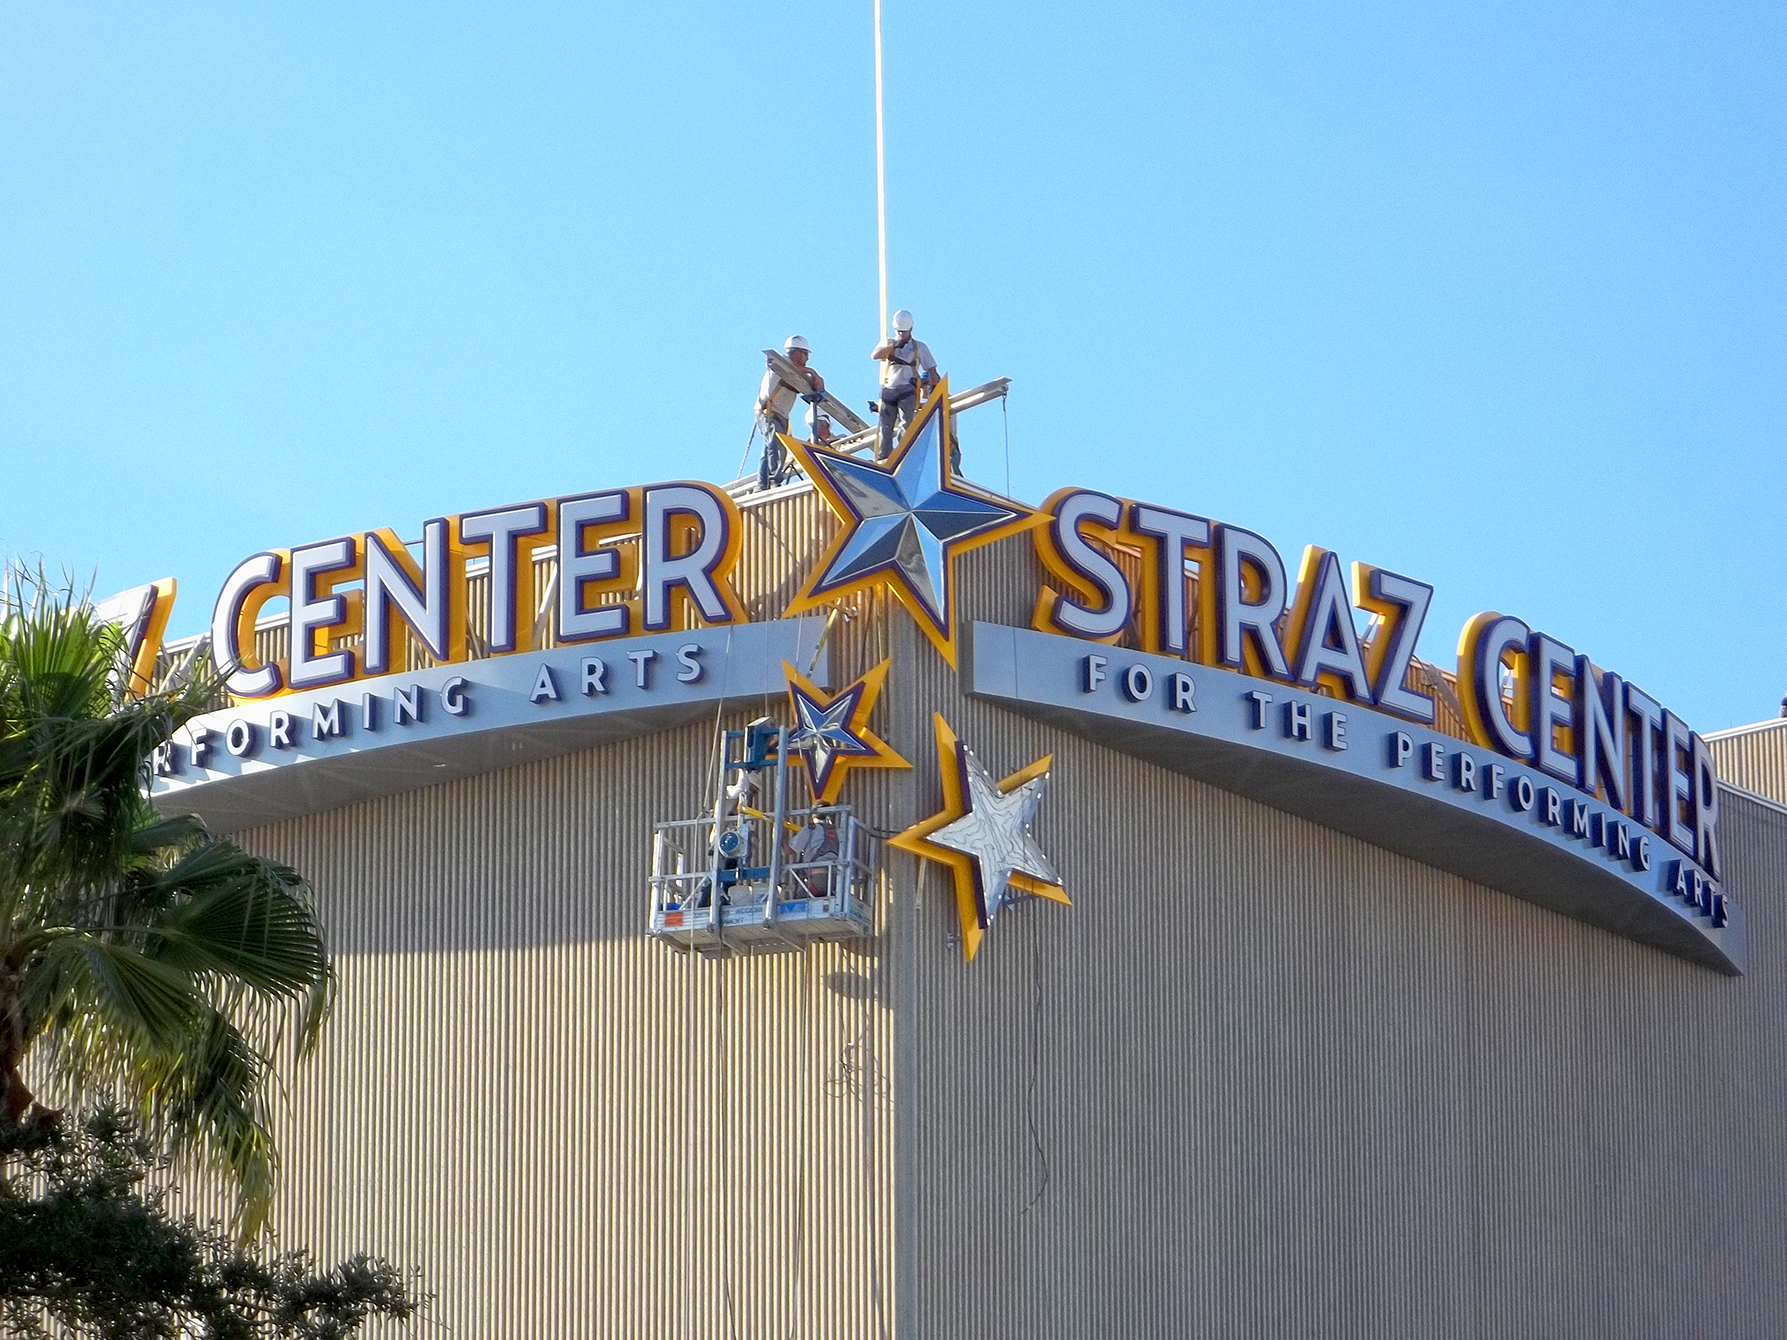 Stray Center sign install